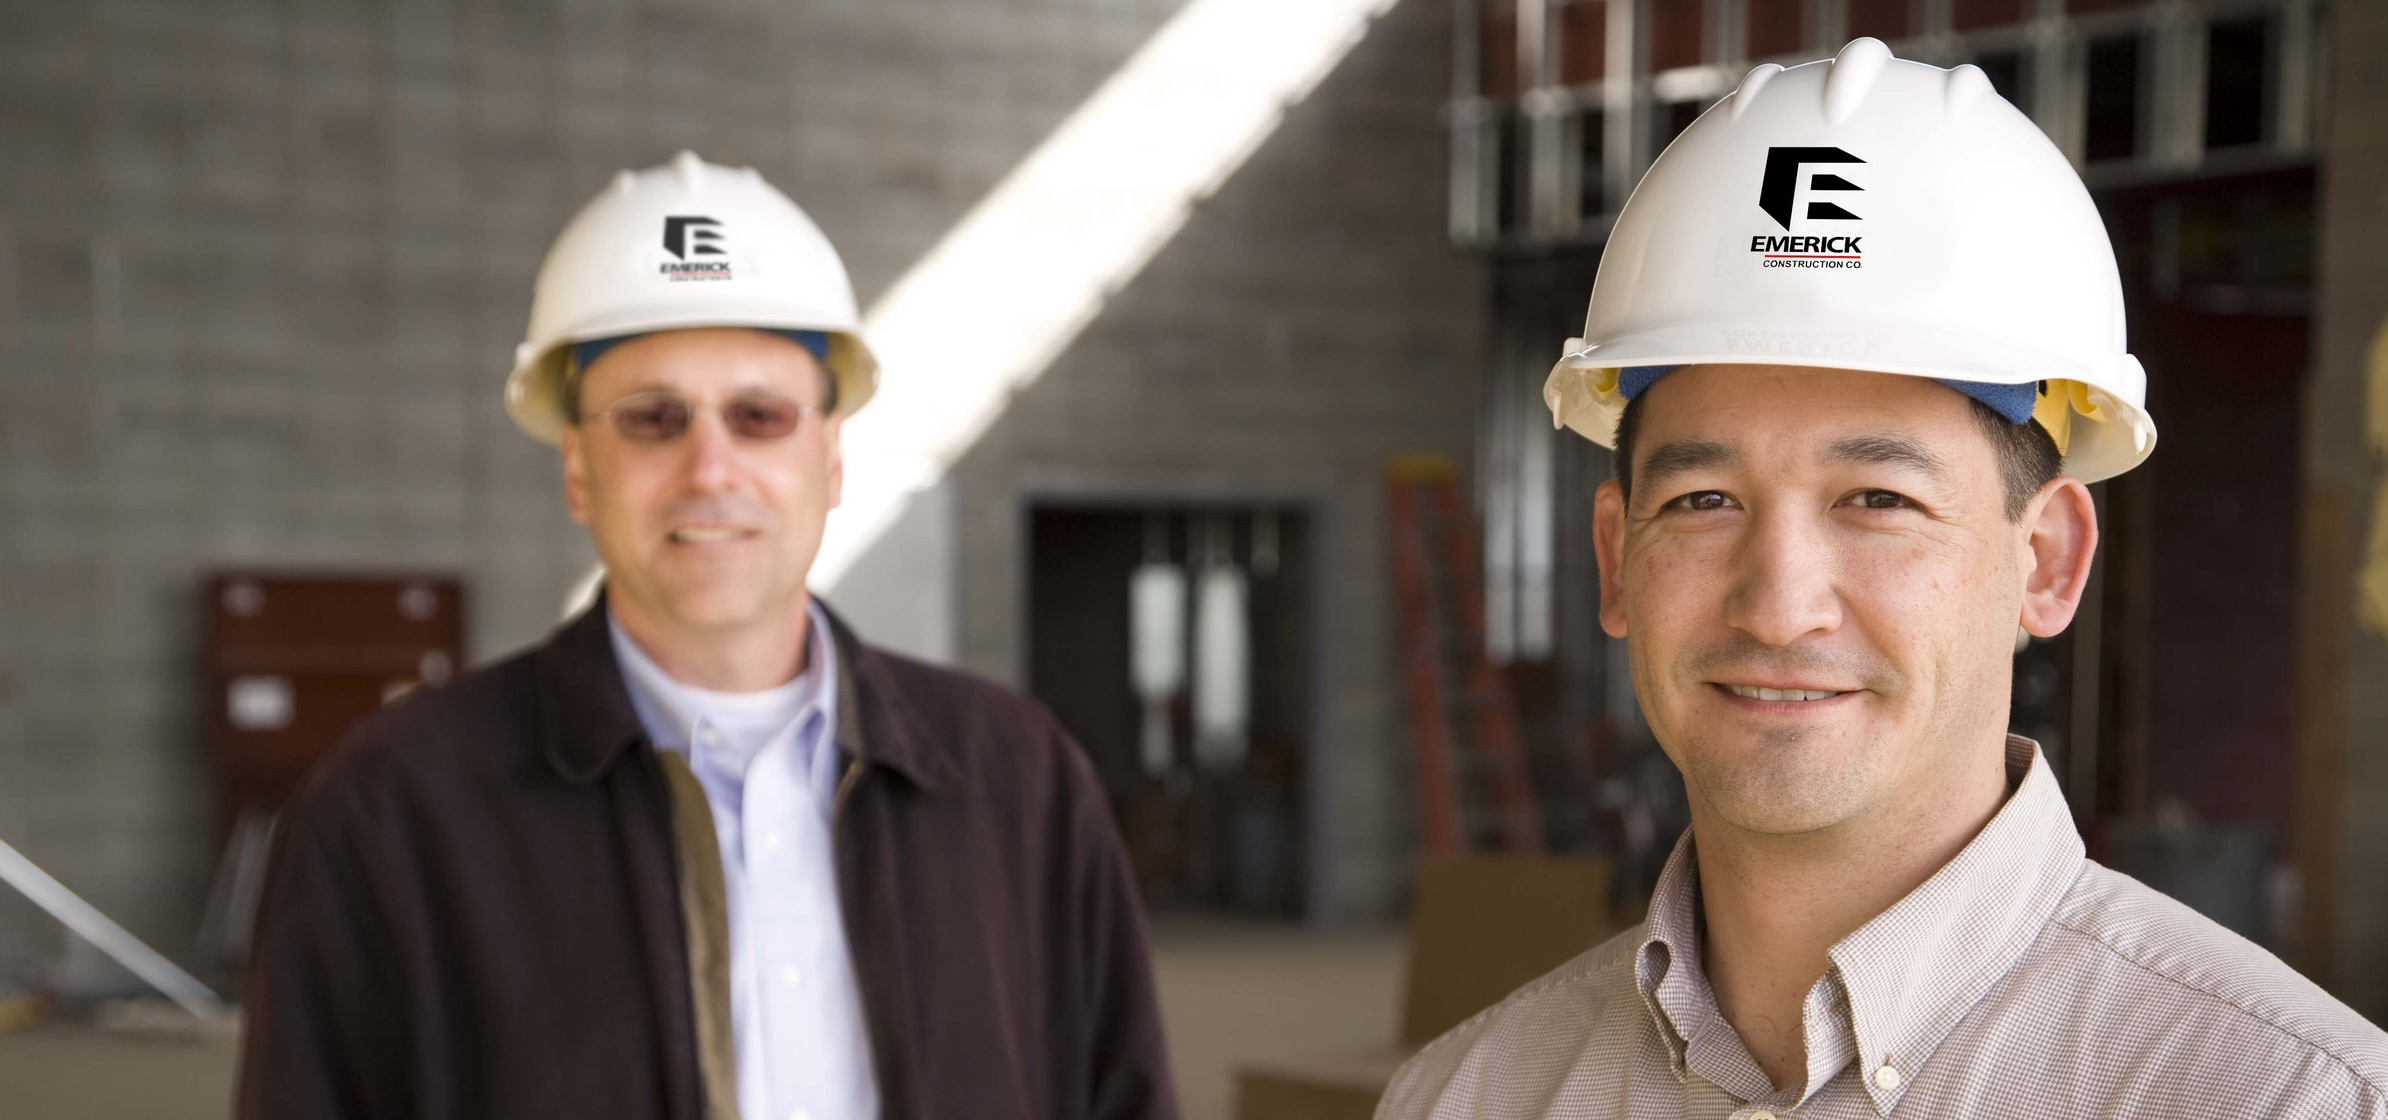 Art Beyer, Project Executive and Mike Williams, Project Manager with Emerick